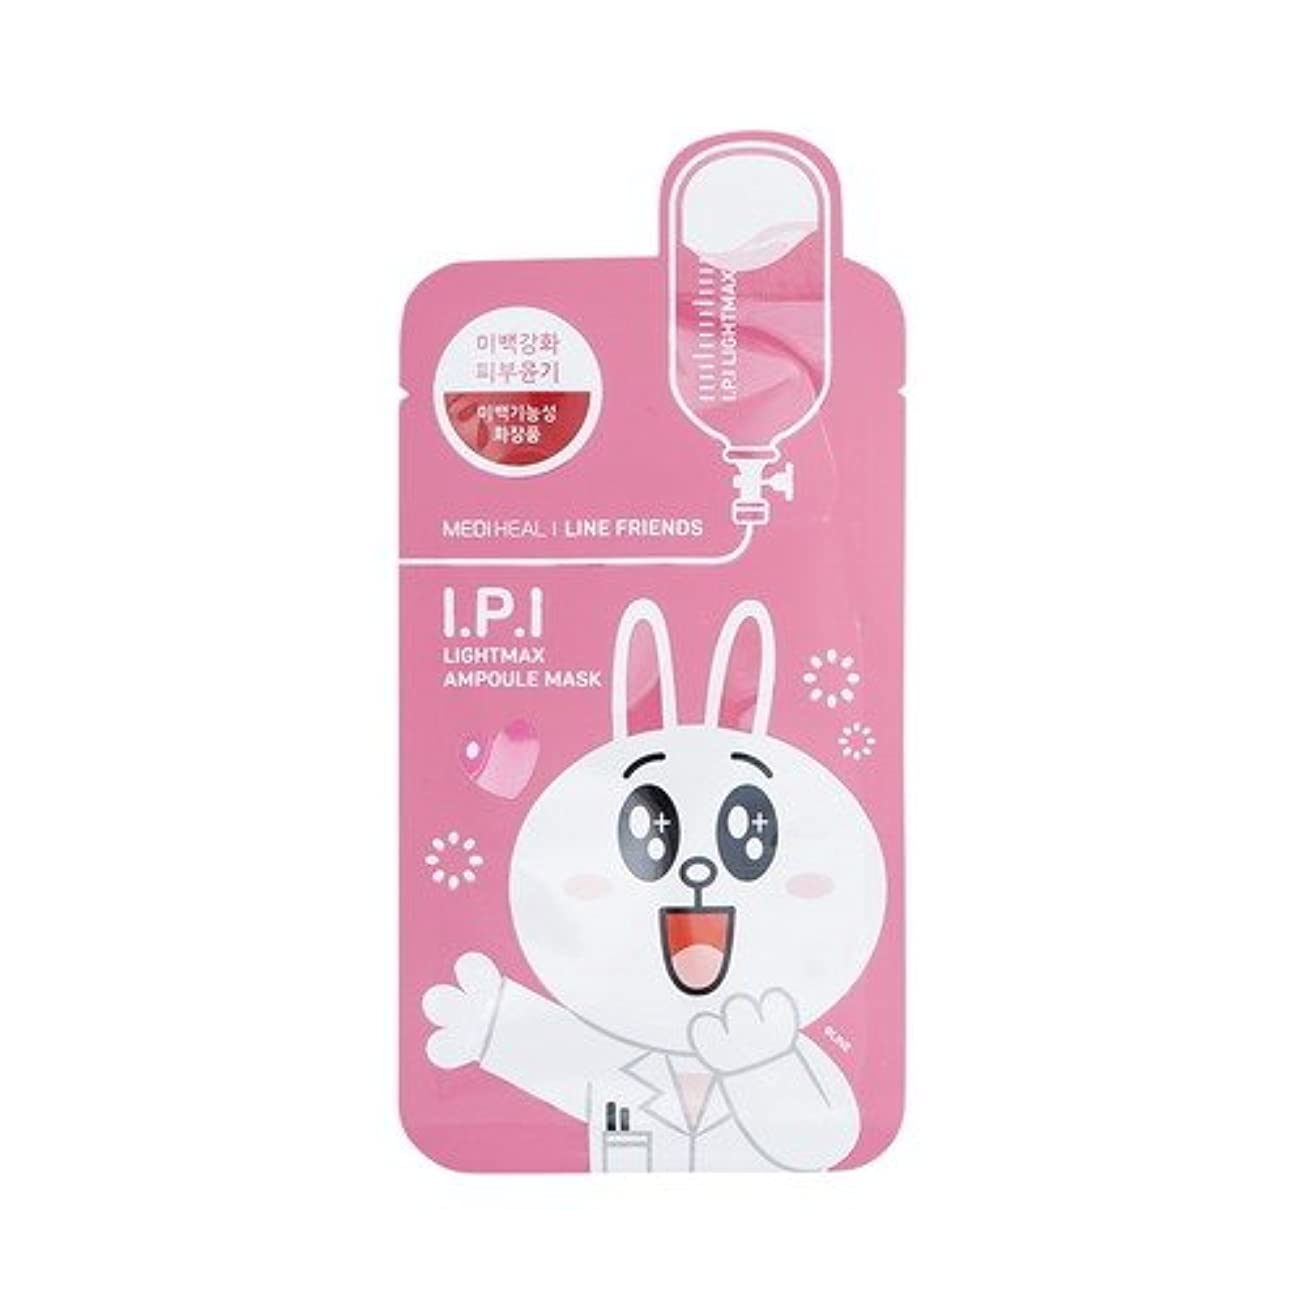 くまゴールデン不条理(3 Pack) MEDIHEAL Line Friends I.P.I Lightmax Ampoule Face Mask (並行輸入品)